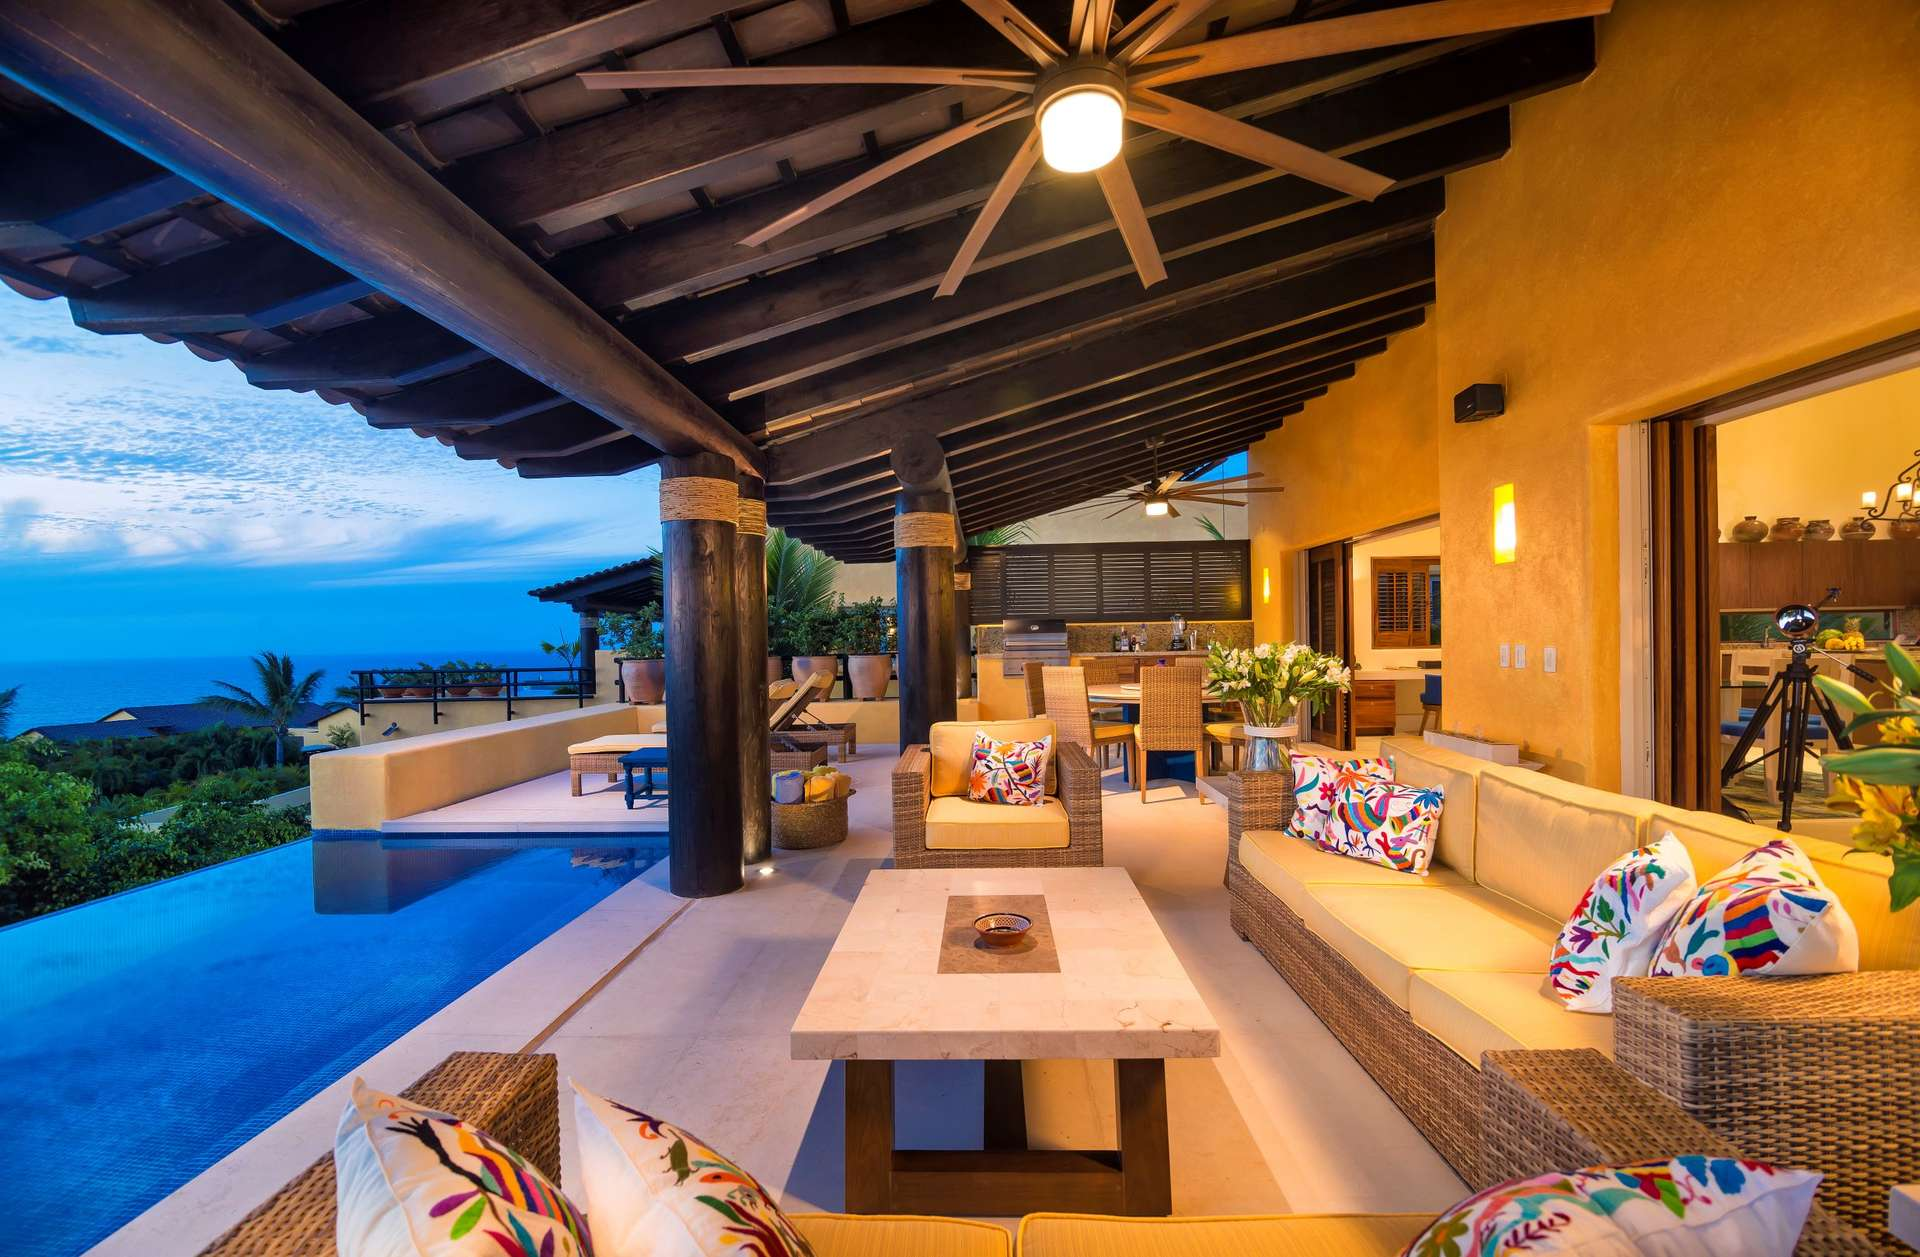 Luxury vacation rentals mexico - Punta mita - Four seasons punta mita - Villa Maria - Image 1/12